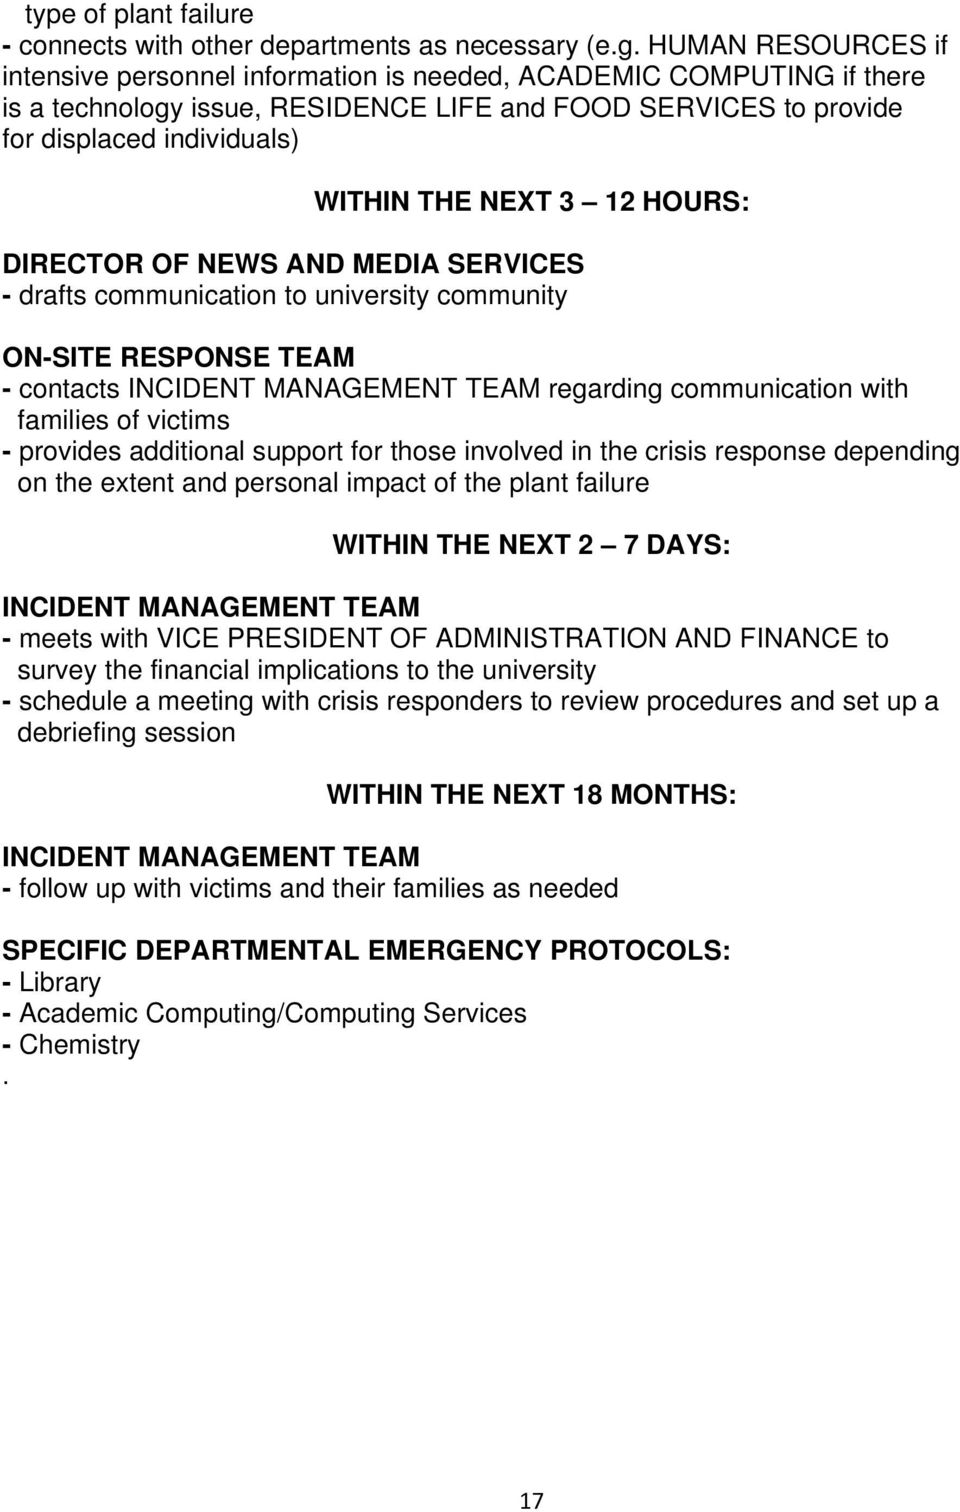 3 12 HOURS: DIRECTOR OF NEWS AND MEDIA SERVICES - drafts communication to university community ON-SITE RESPONSE TEAM - contacts regarding communication with families of victims - provides additional